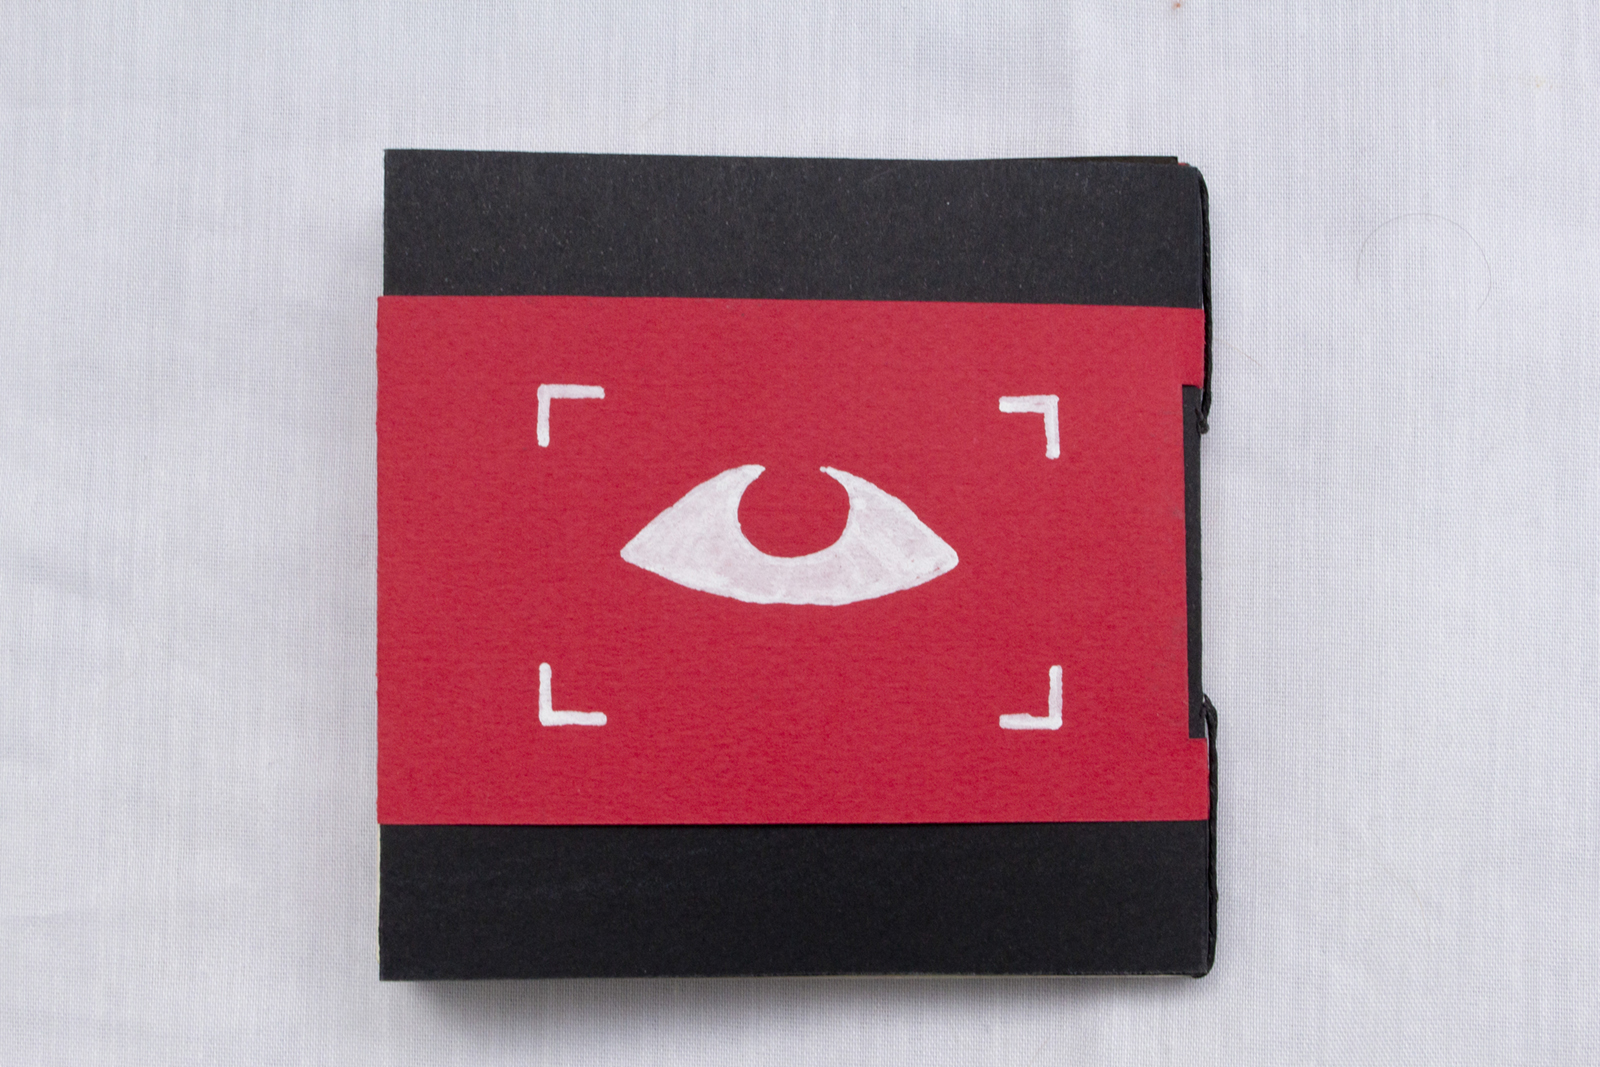 Back cover of Surveilled Self. Black paper cover with a red sleeve. Drawn on the red sleeve is a framed white eye.